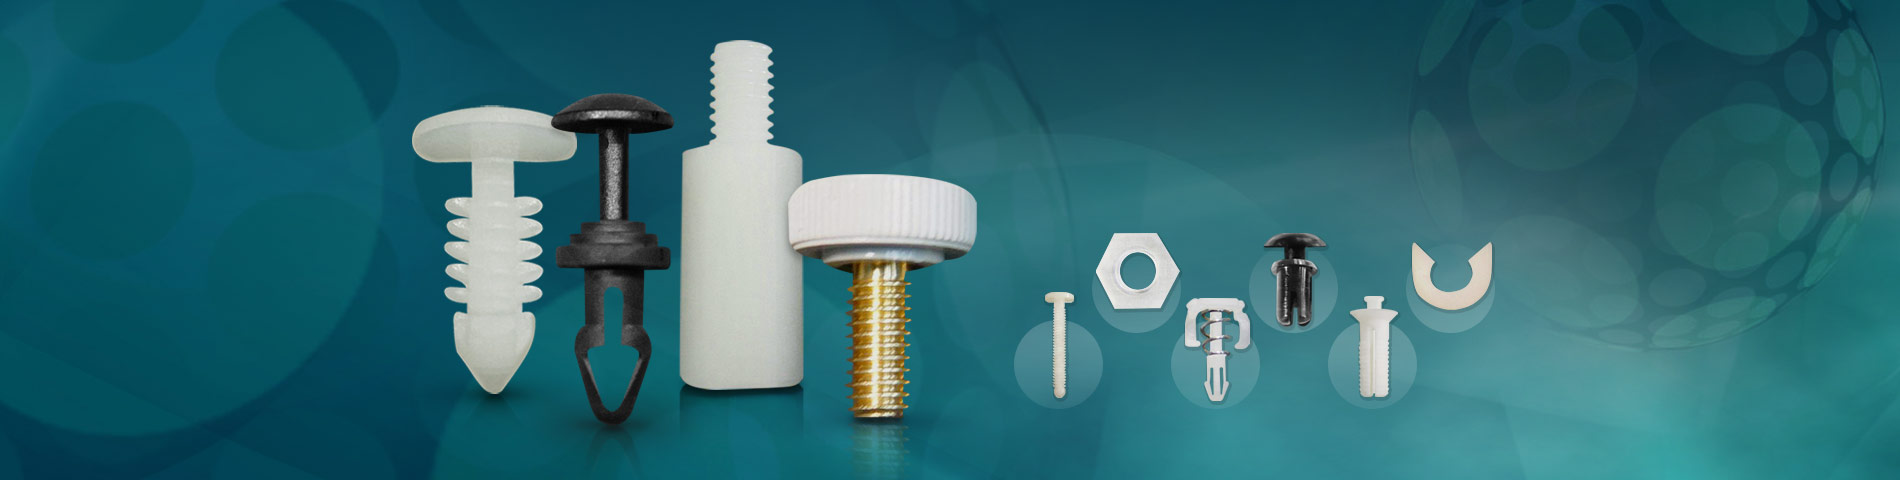 Plastic Fastener The Mark of Quality